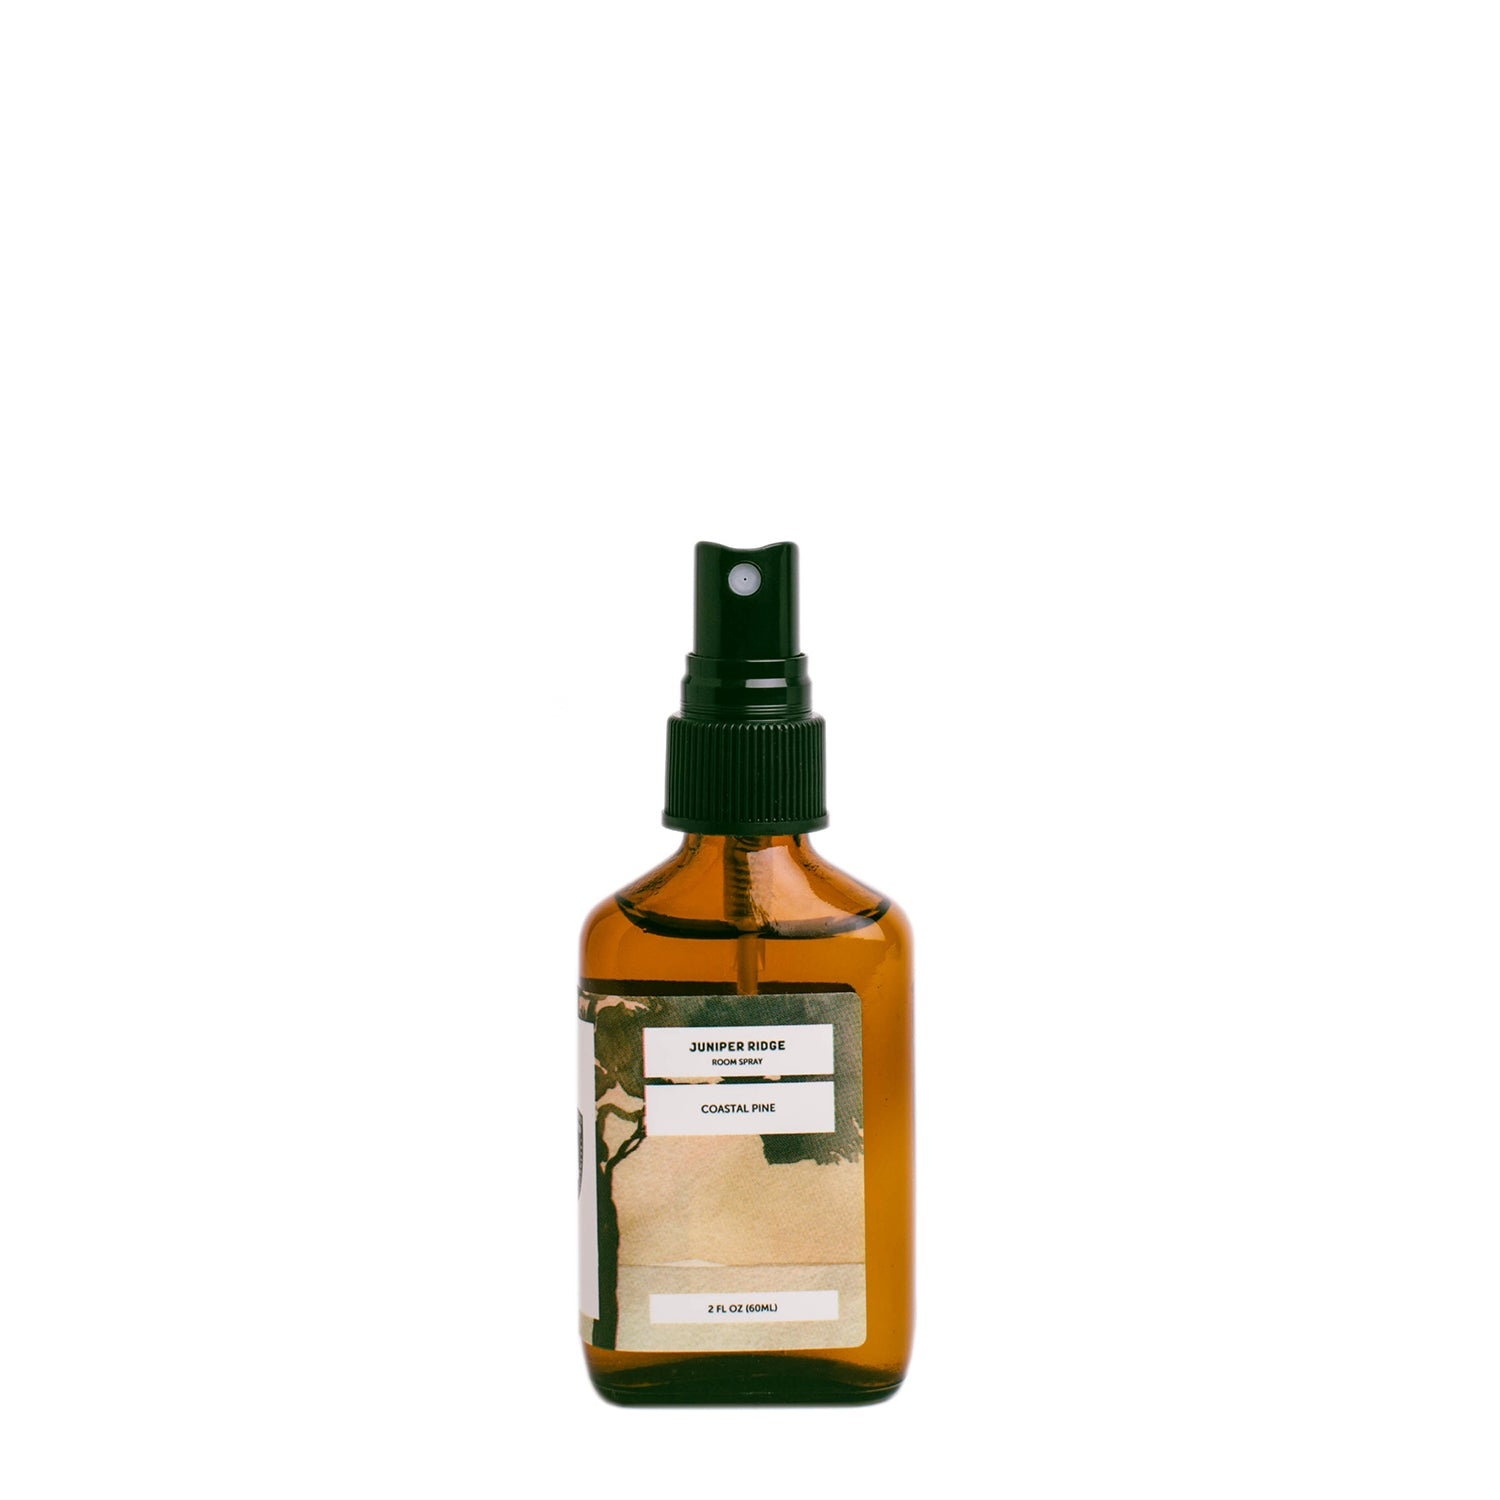 Juniper Ridge Room Spray